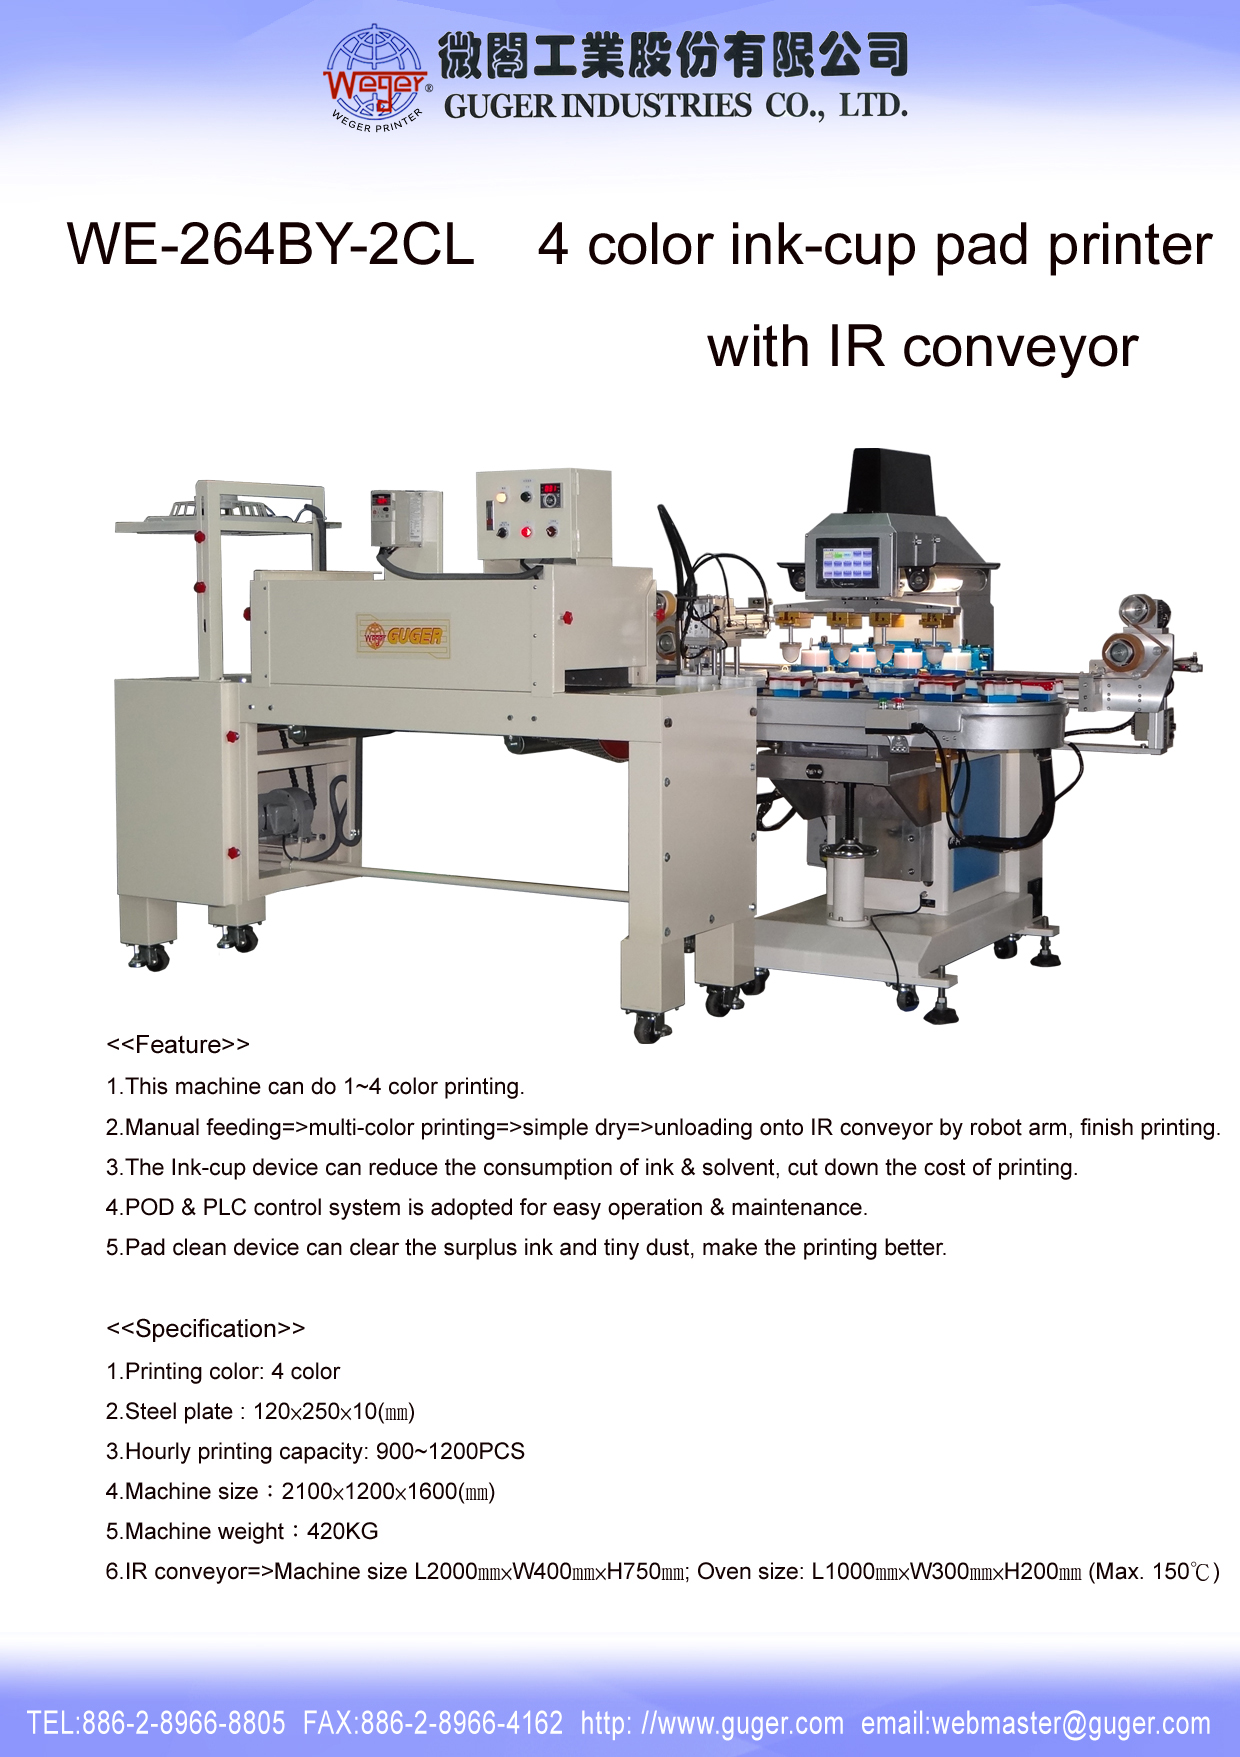 4 color ink-cup pad printer (with IR conveyor)(WE-264BY-2CL